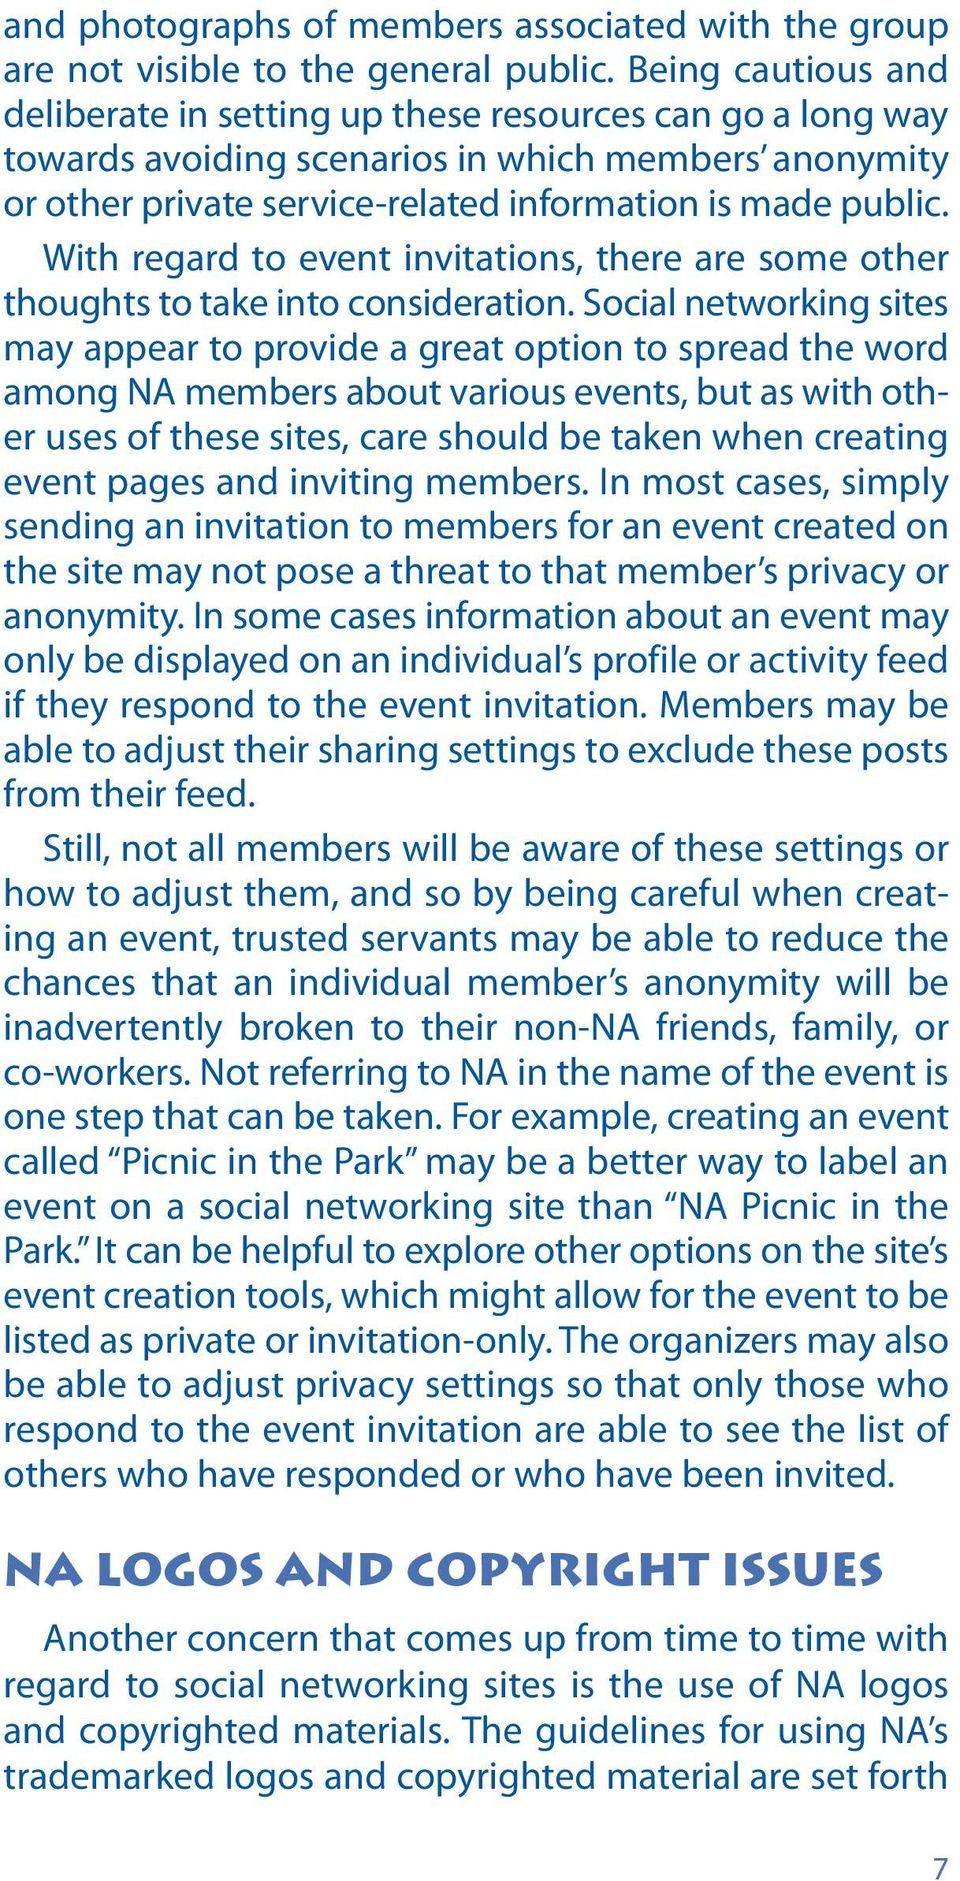 With regard to event invitations, there are some other thoughts to take into consideration.